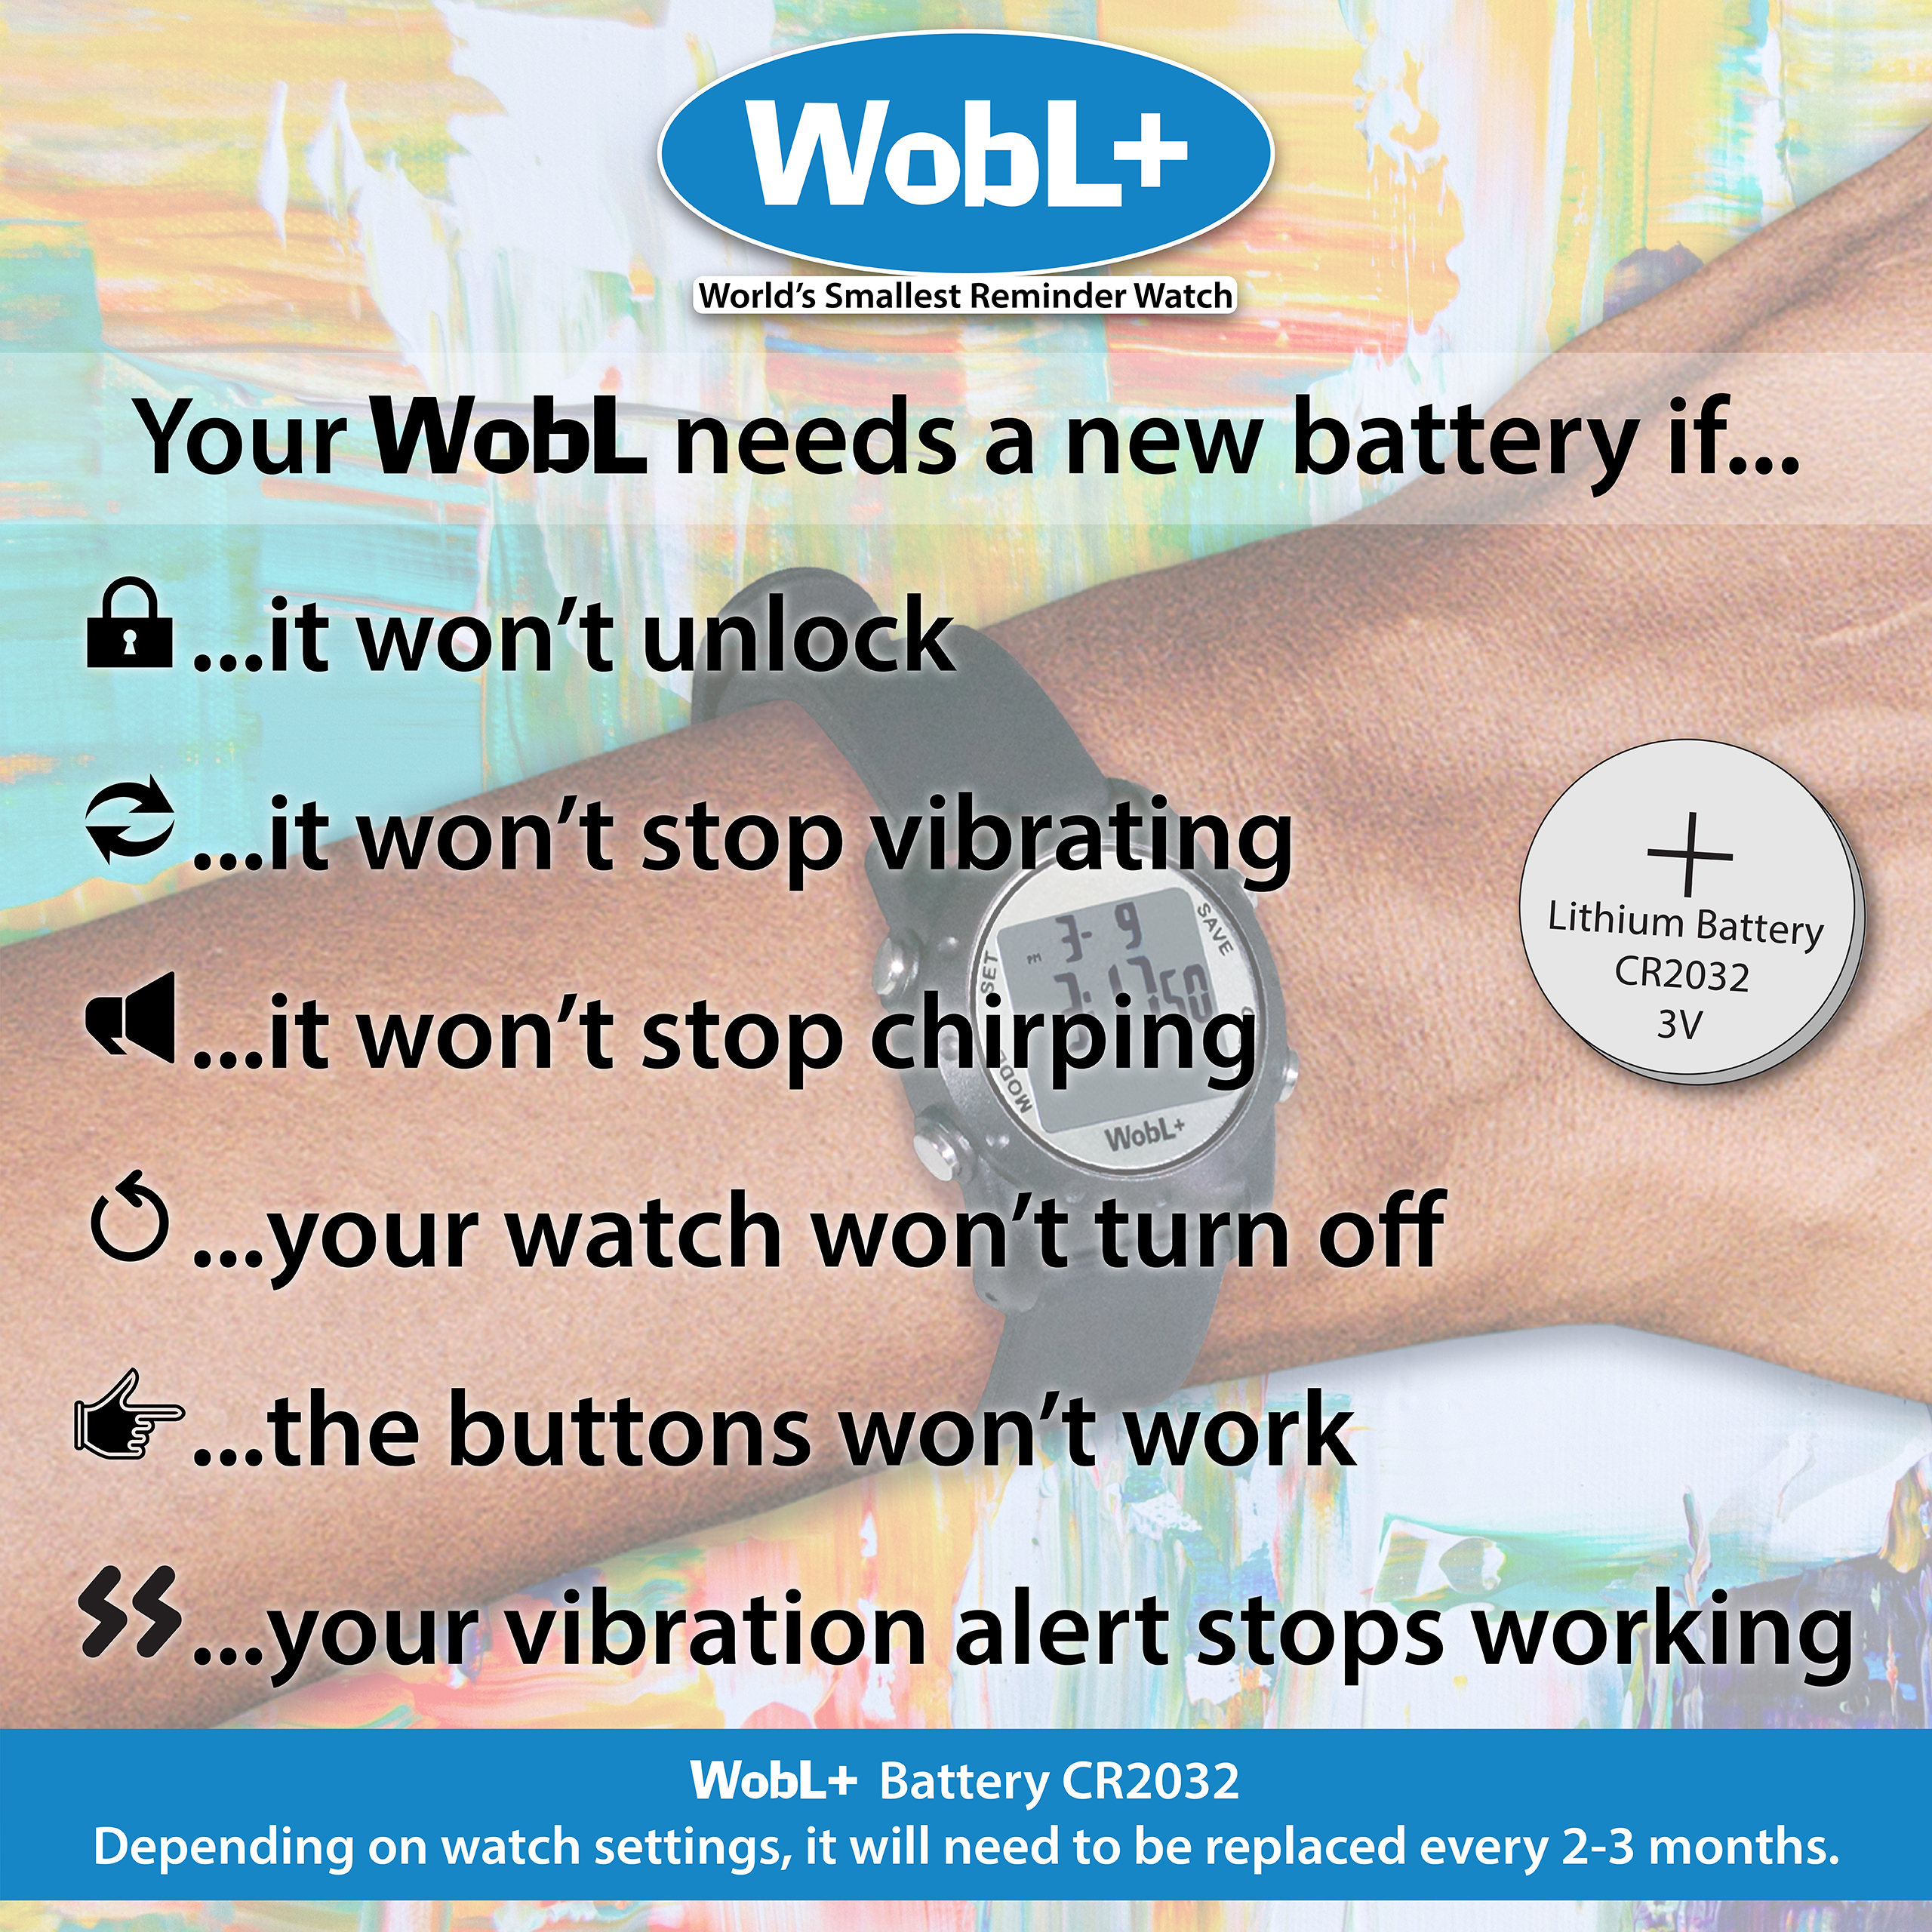 How to know if your WobL watch battery should be replaced